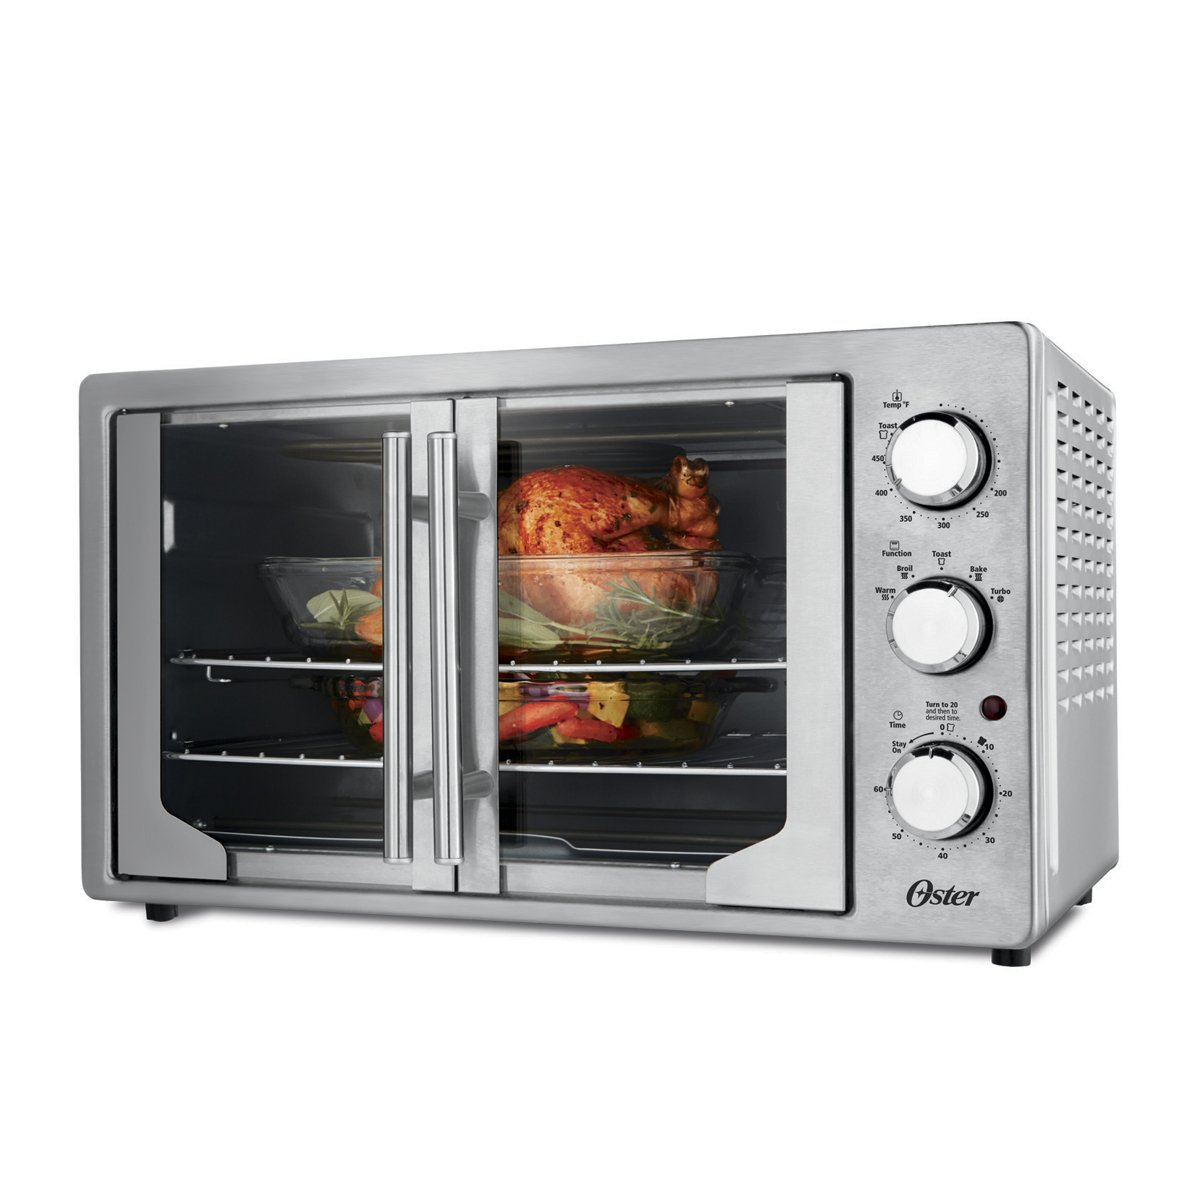 Amazon.com: Oster TSSTTVFDXL Manual French Door Oven, Stainless Steel: Kitchen & Dining